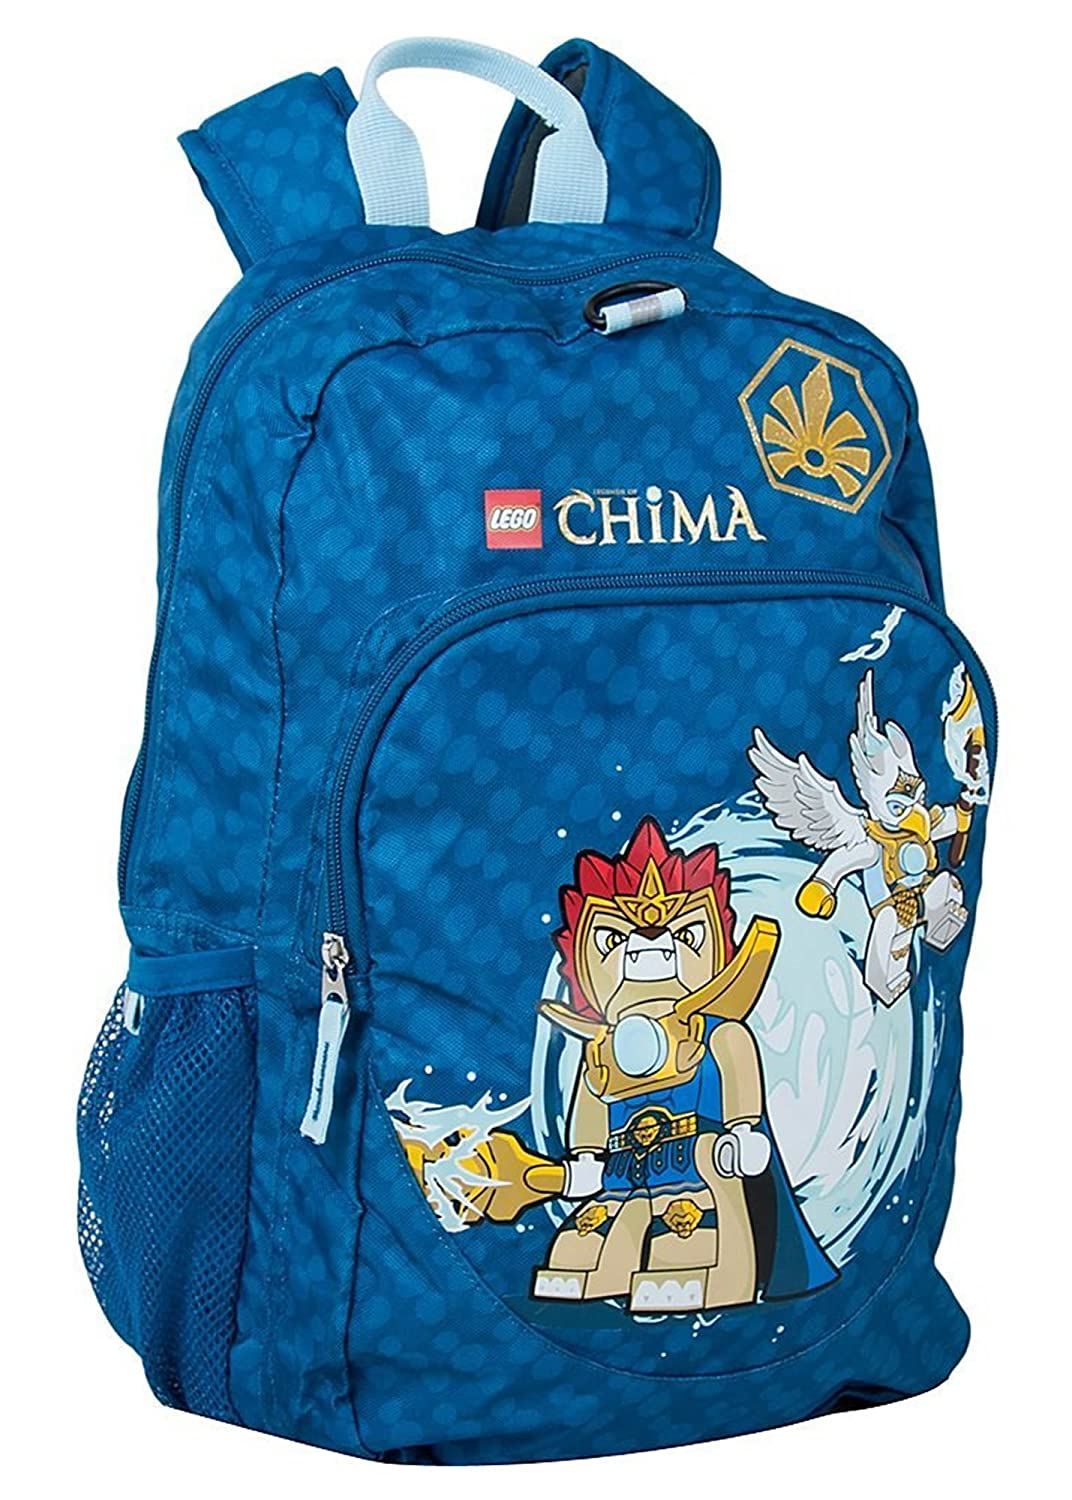 LEGO Chima Heritage Classic Backpack